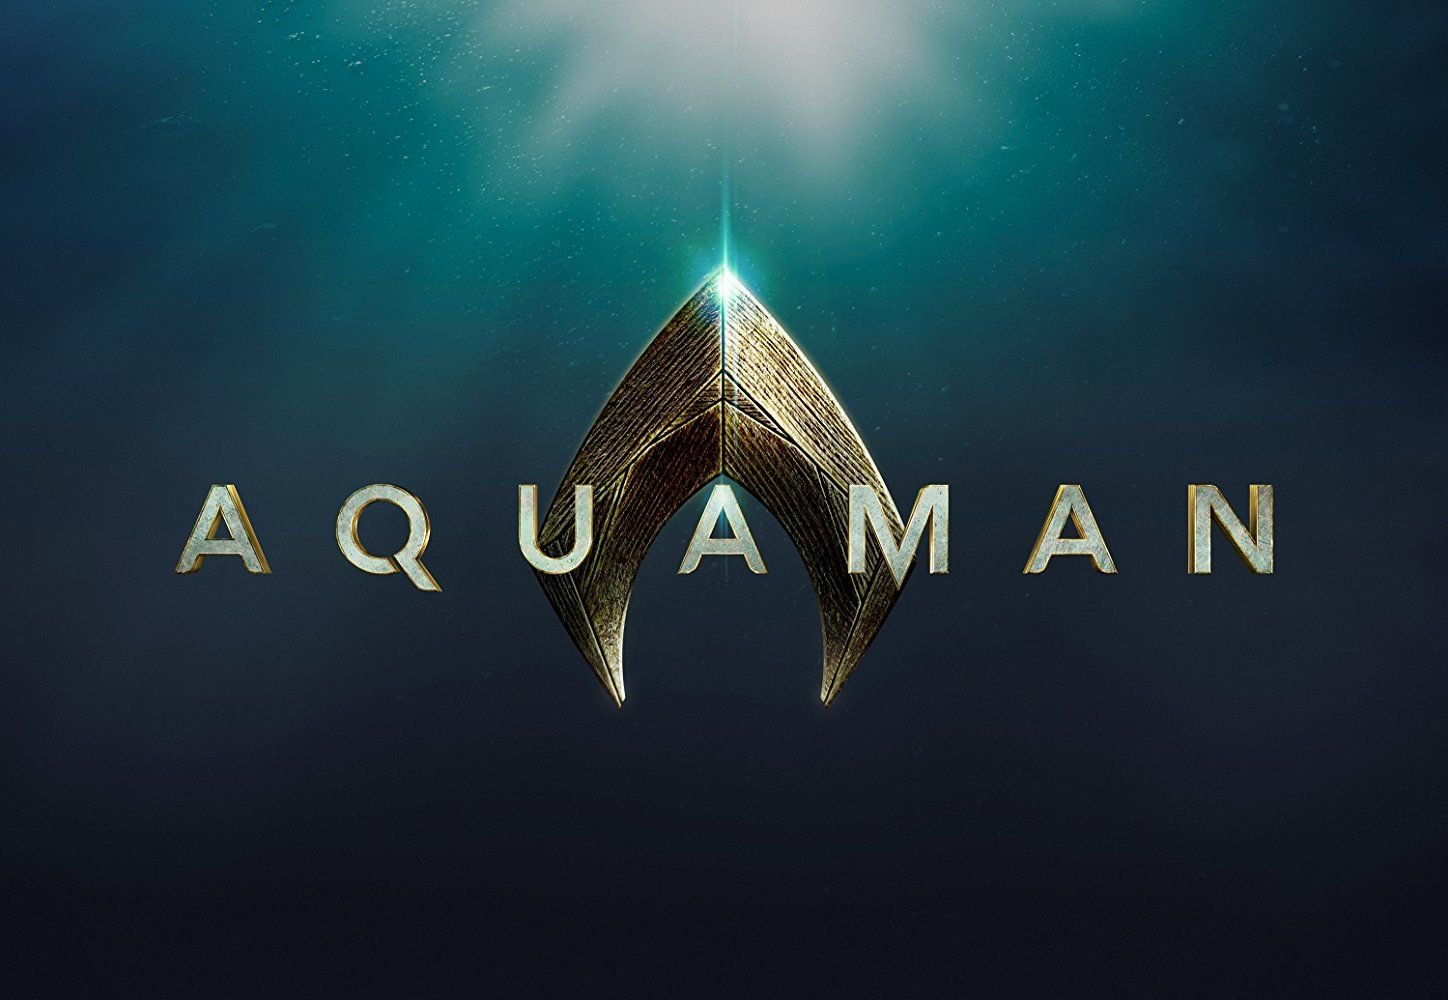 'Aquaman' Poster Revealed: Jason Momoa Dives In To The Crowded DC Pool